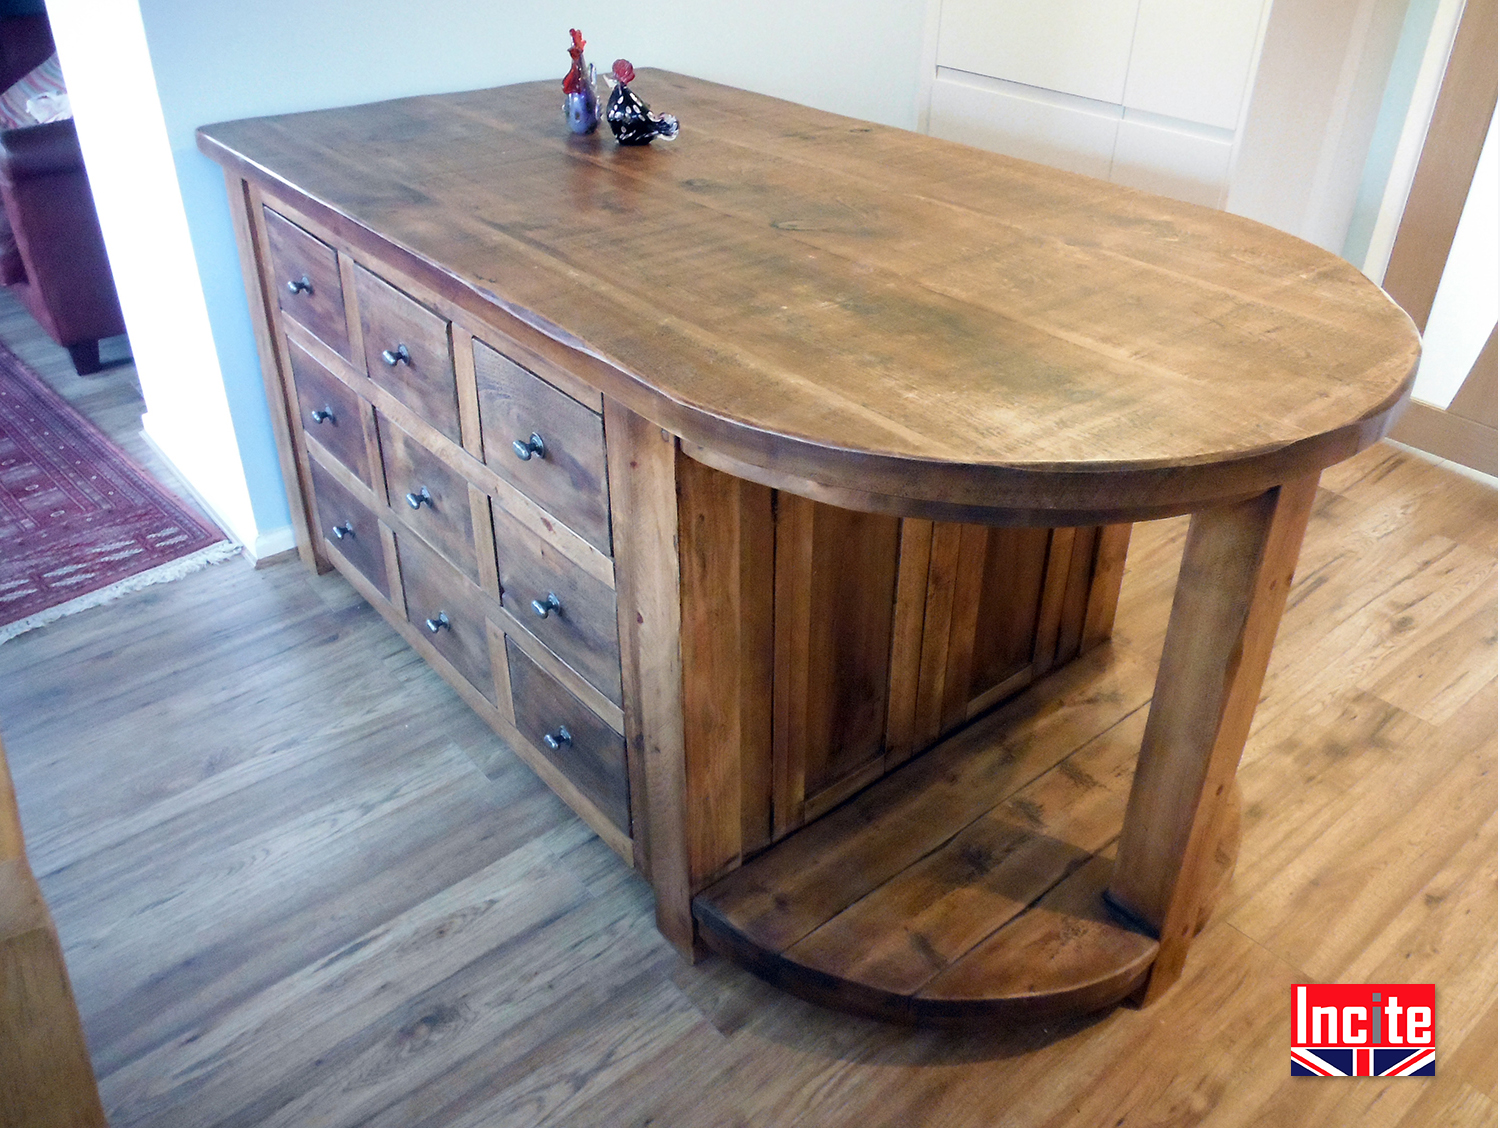 Bespoke kitchen island custom made for you by incite derby for Curved kitchen units uk